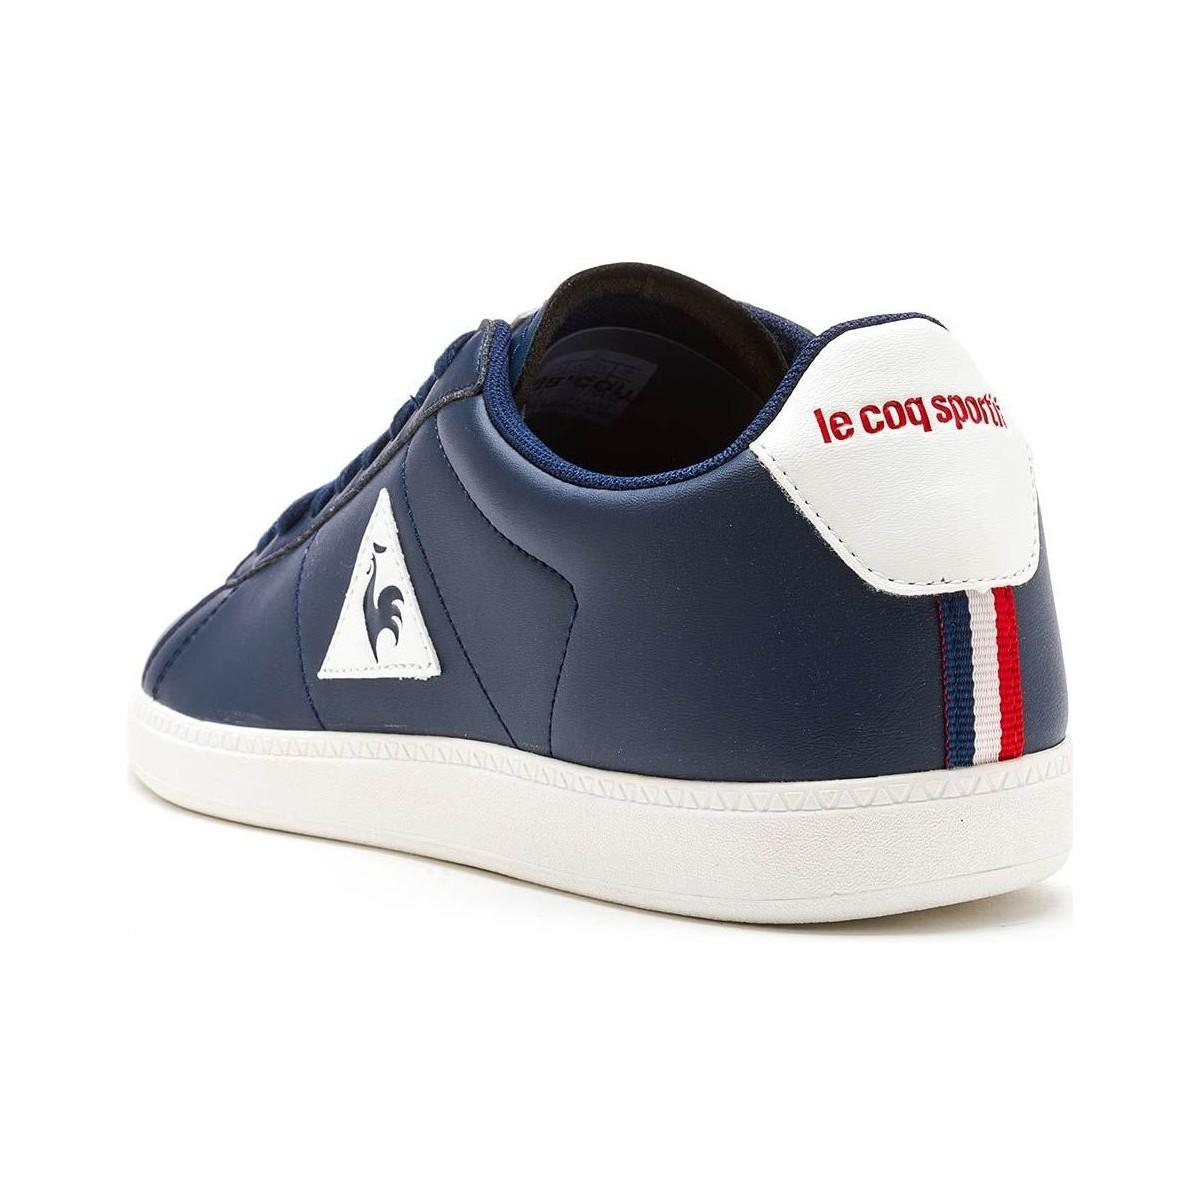 a6f93767b33e Le Coq Sportif Courtset S Lea Trainers In Dress Blue Vintage Red ...